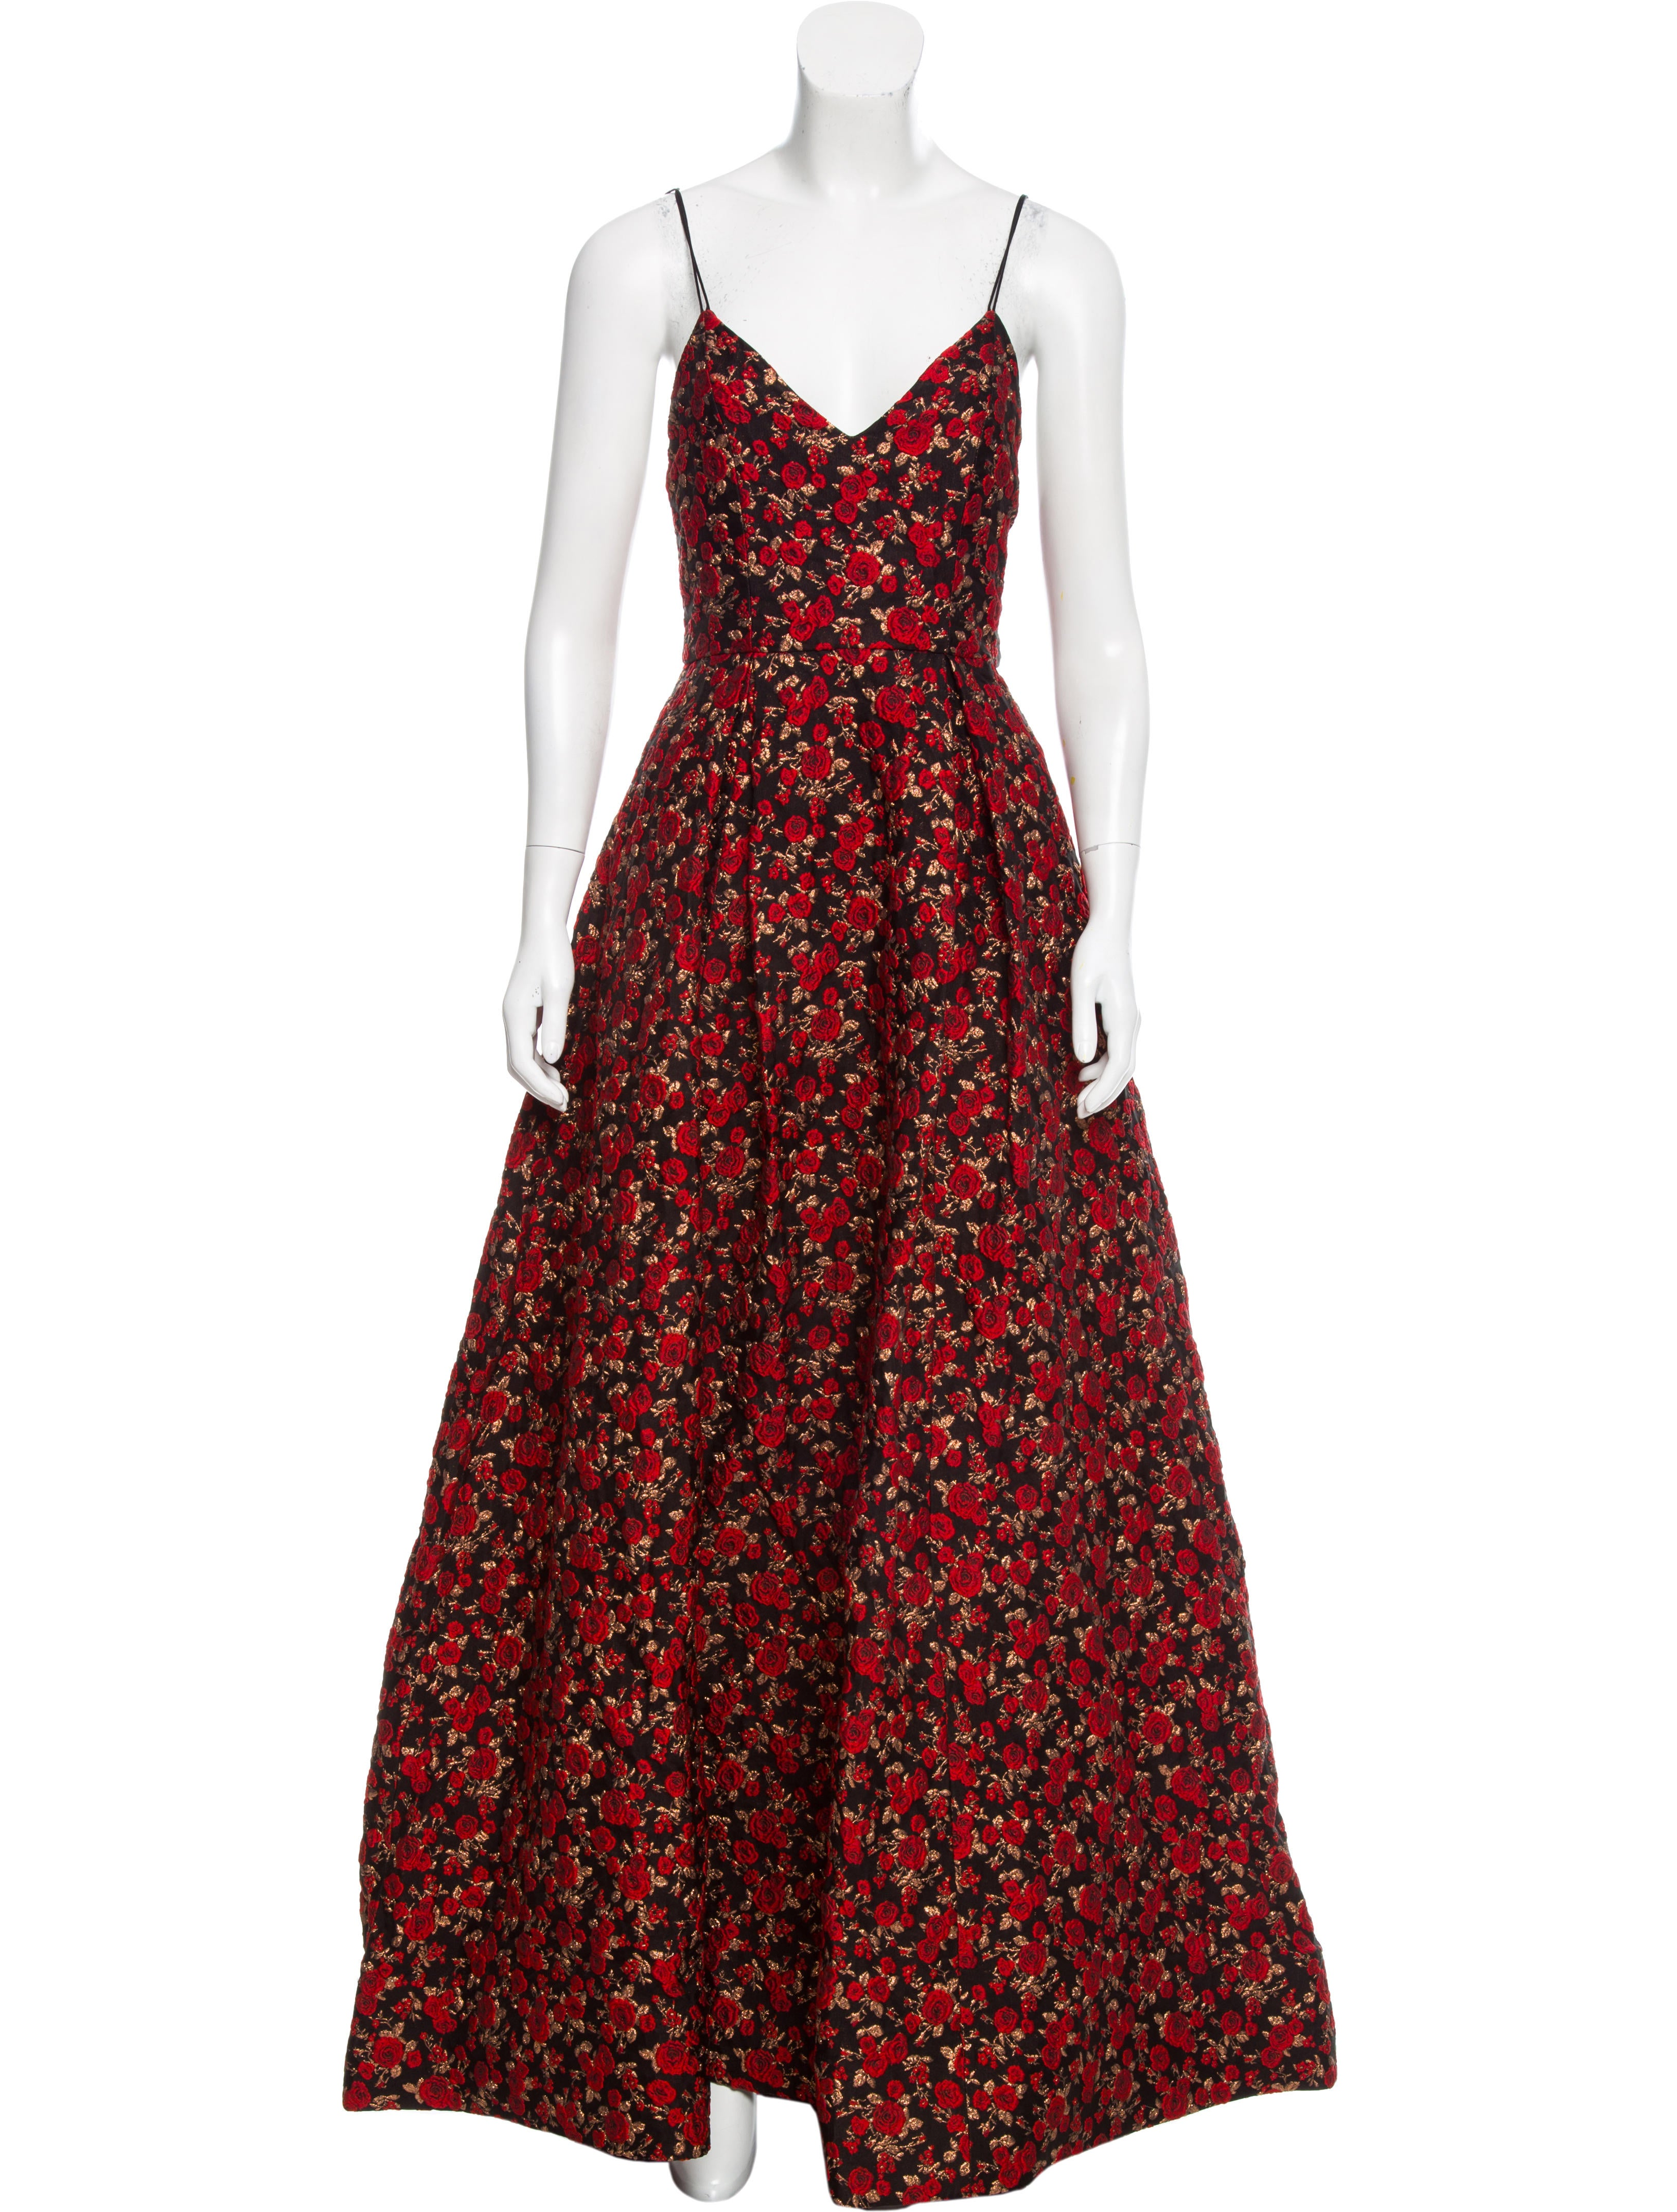 Alice + Olivia Rose Brocade Evening Gown w/ Tags - Clothing ...